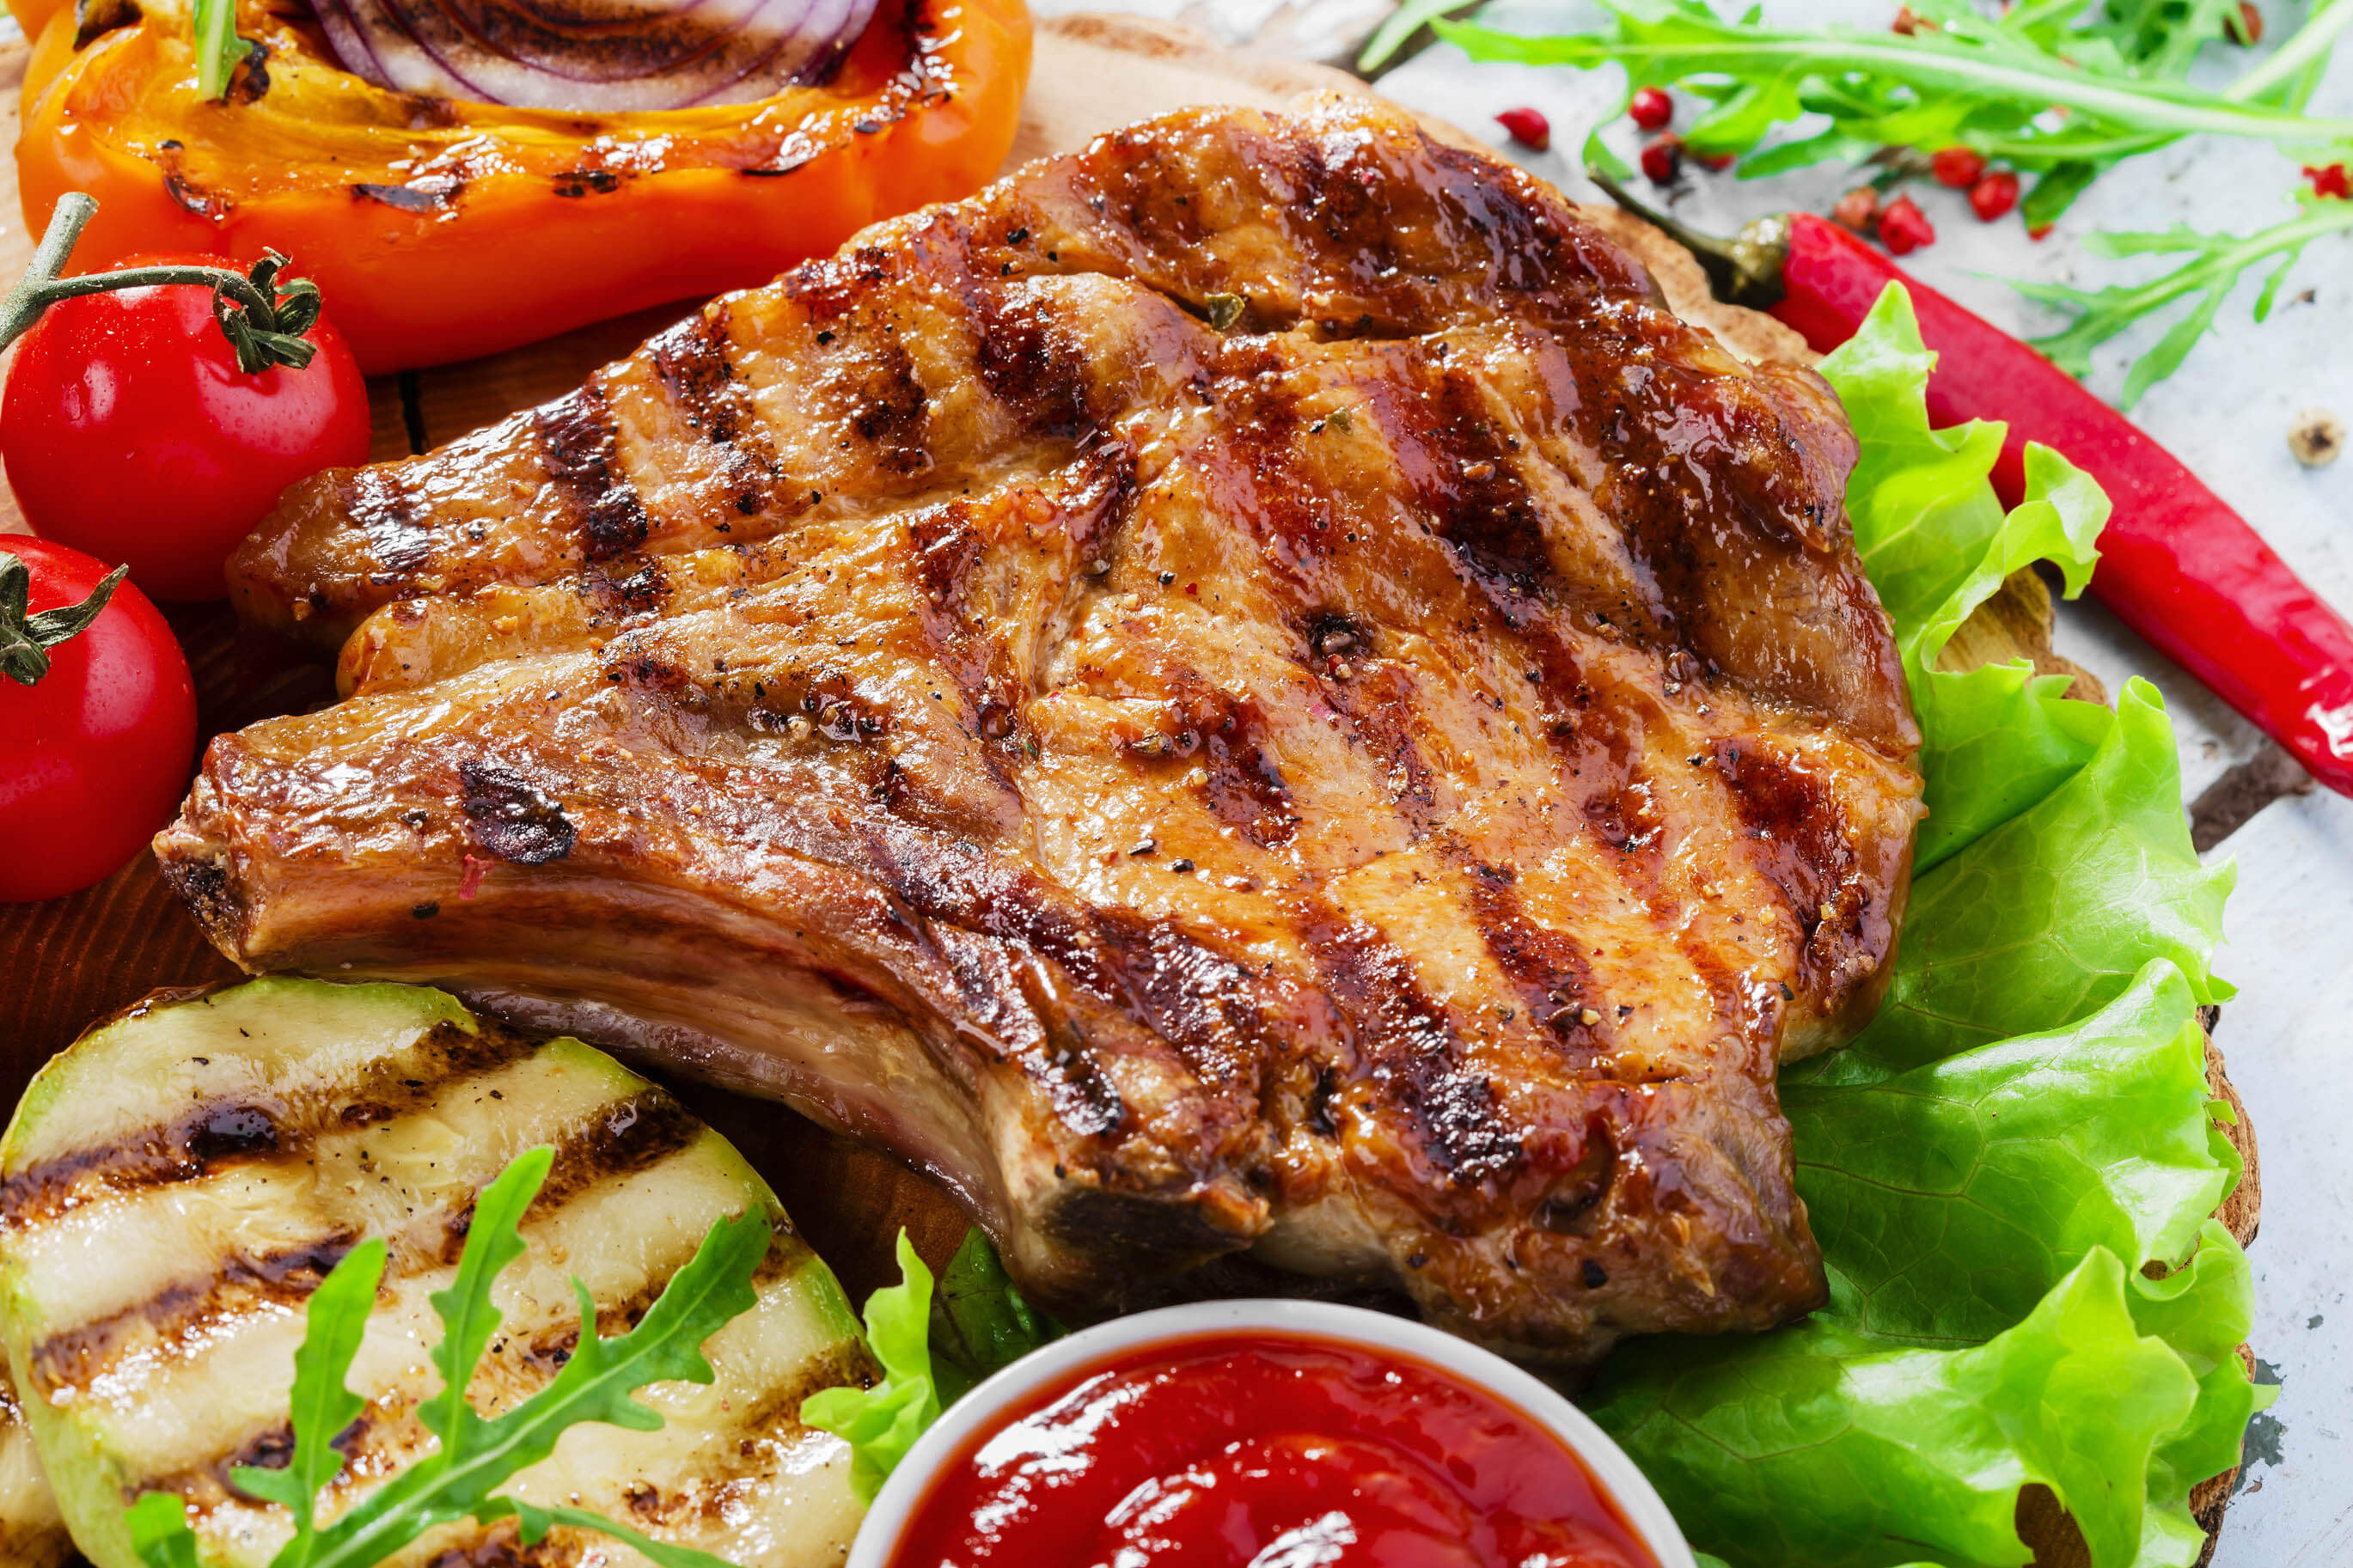 Healthy Grilled Pork Chops  Genetic engineering could make pork heart healthy if not